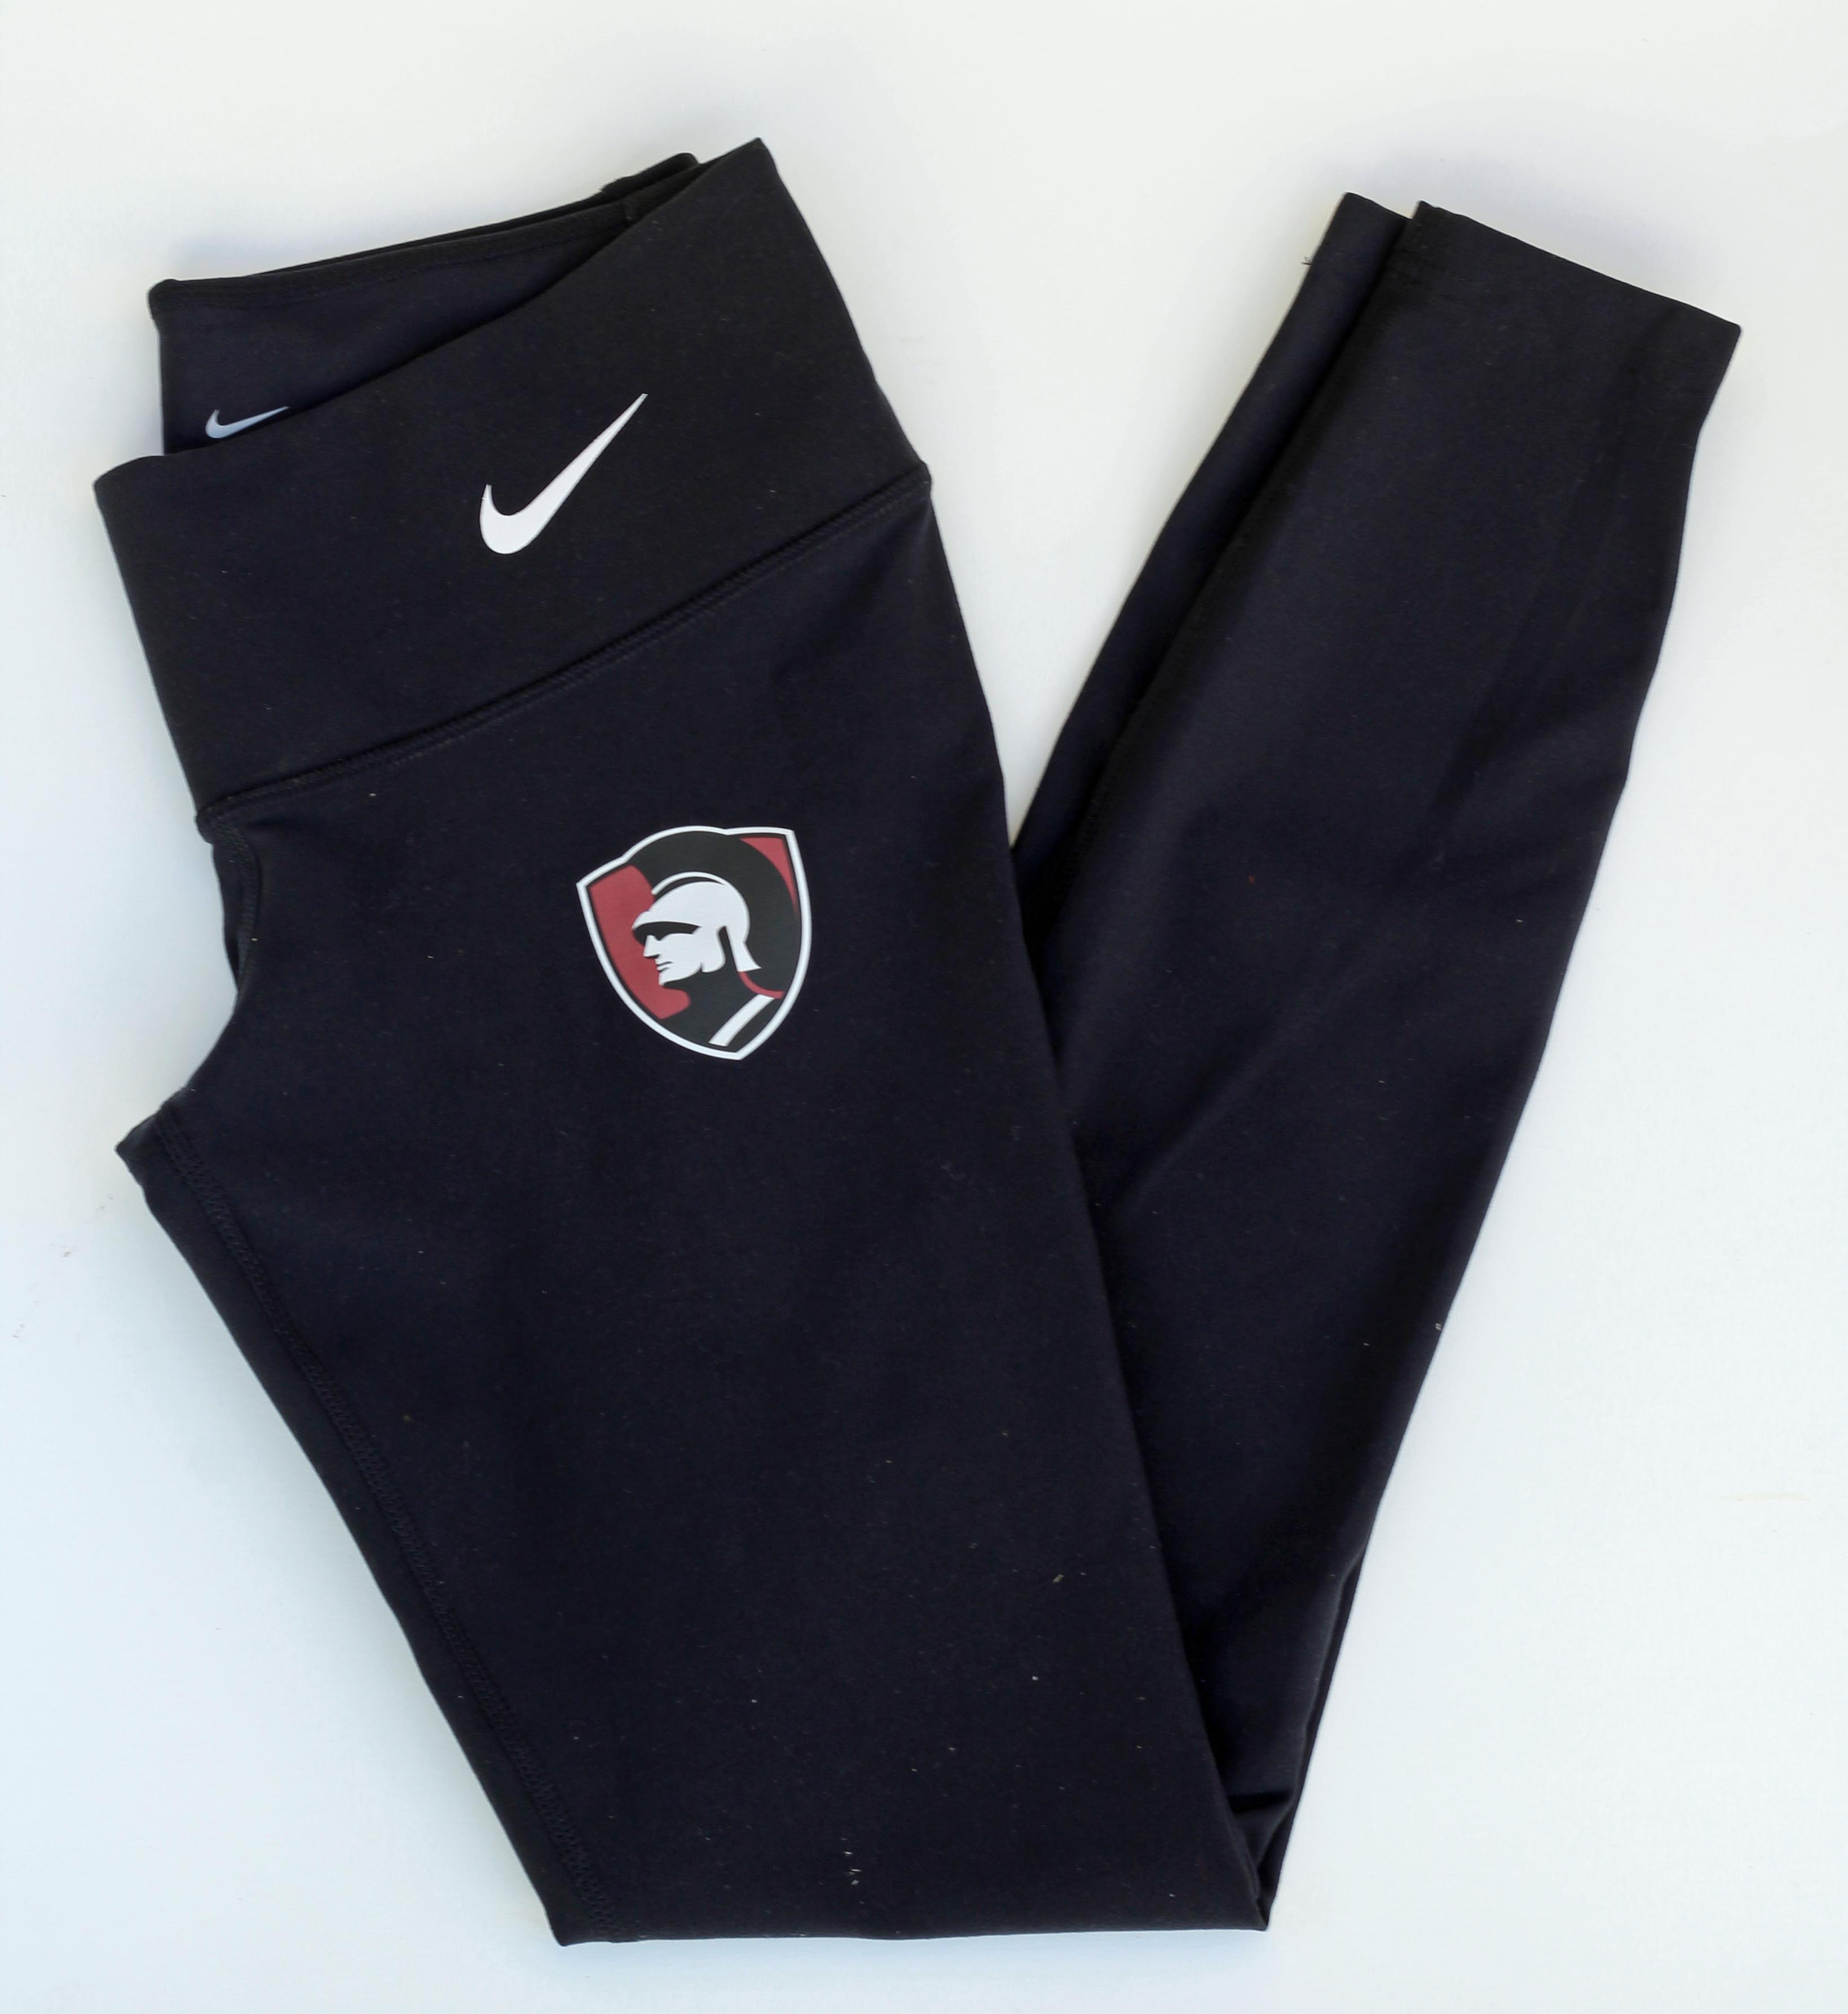 5d3f13c3e6 Image for the Nike Dri Fit Legend 2.0 Tight Pant product